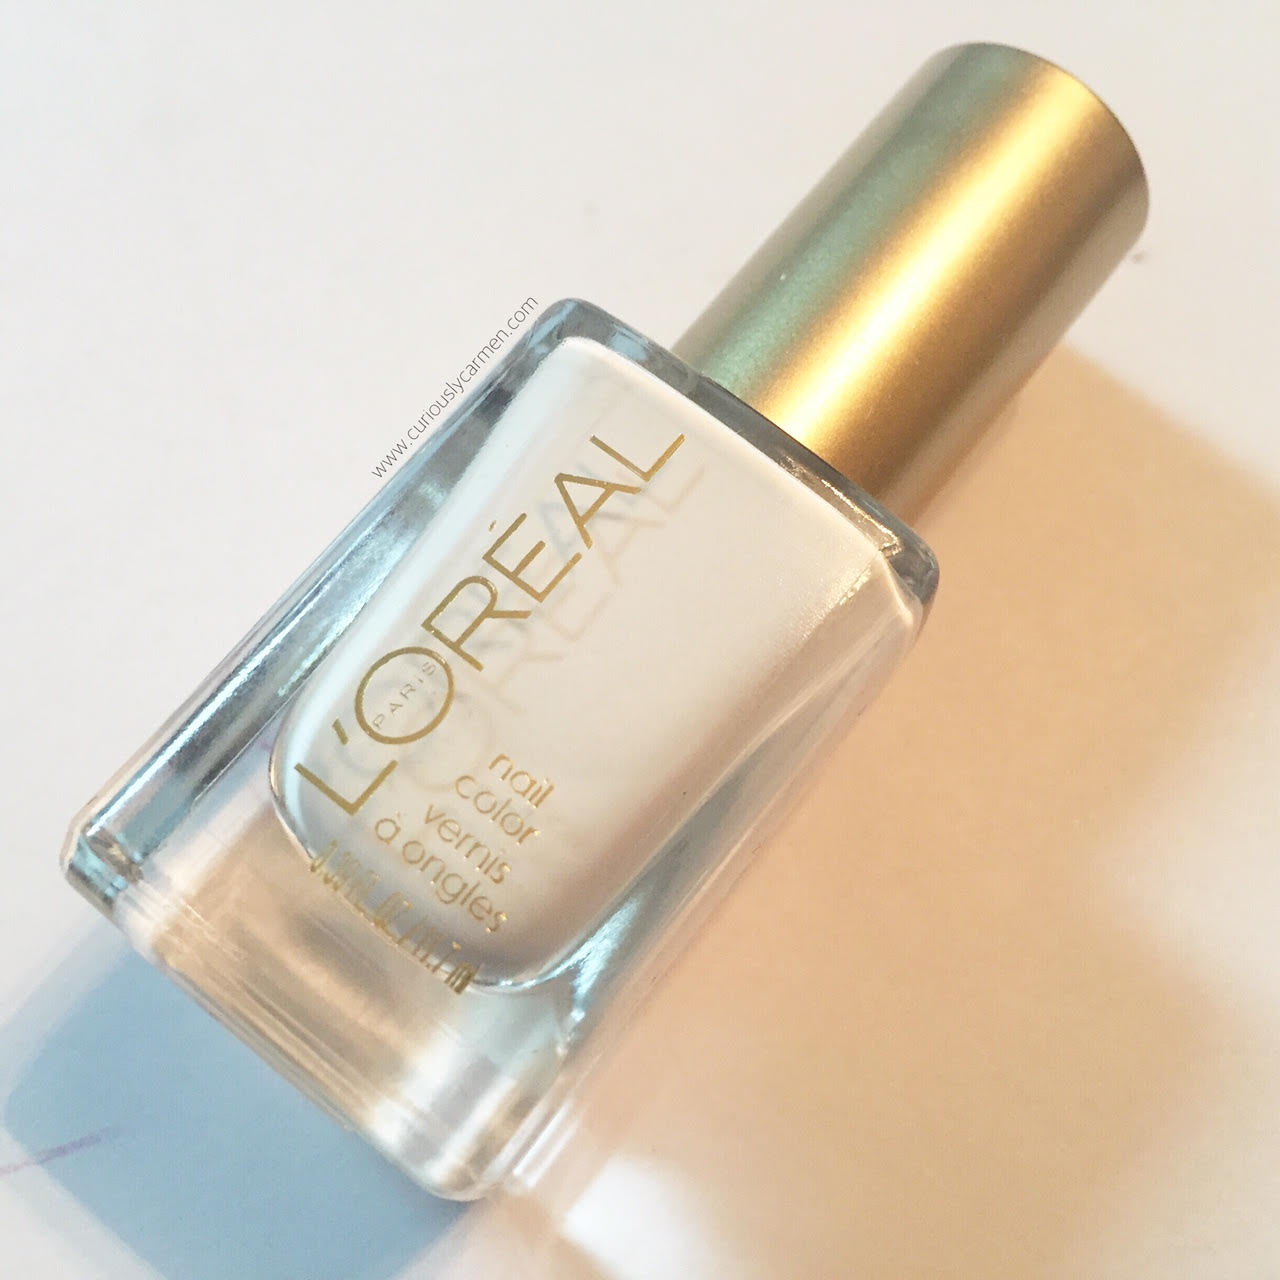 L'Oreal Nail Colour White Packaging